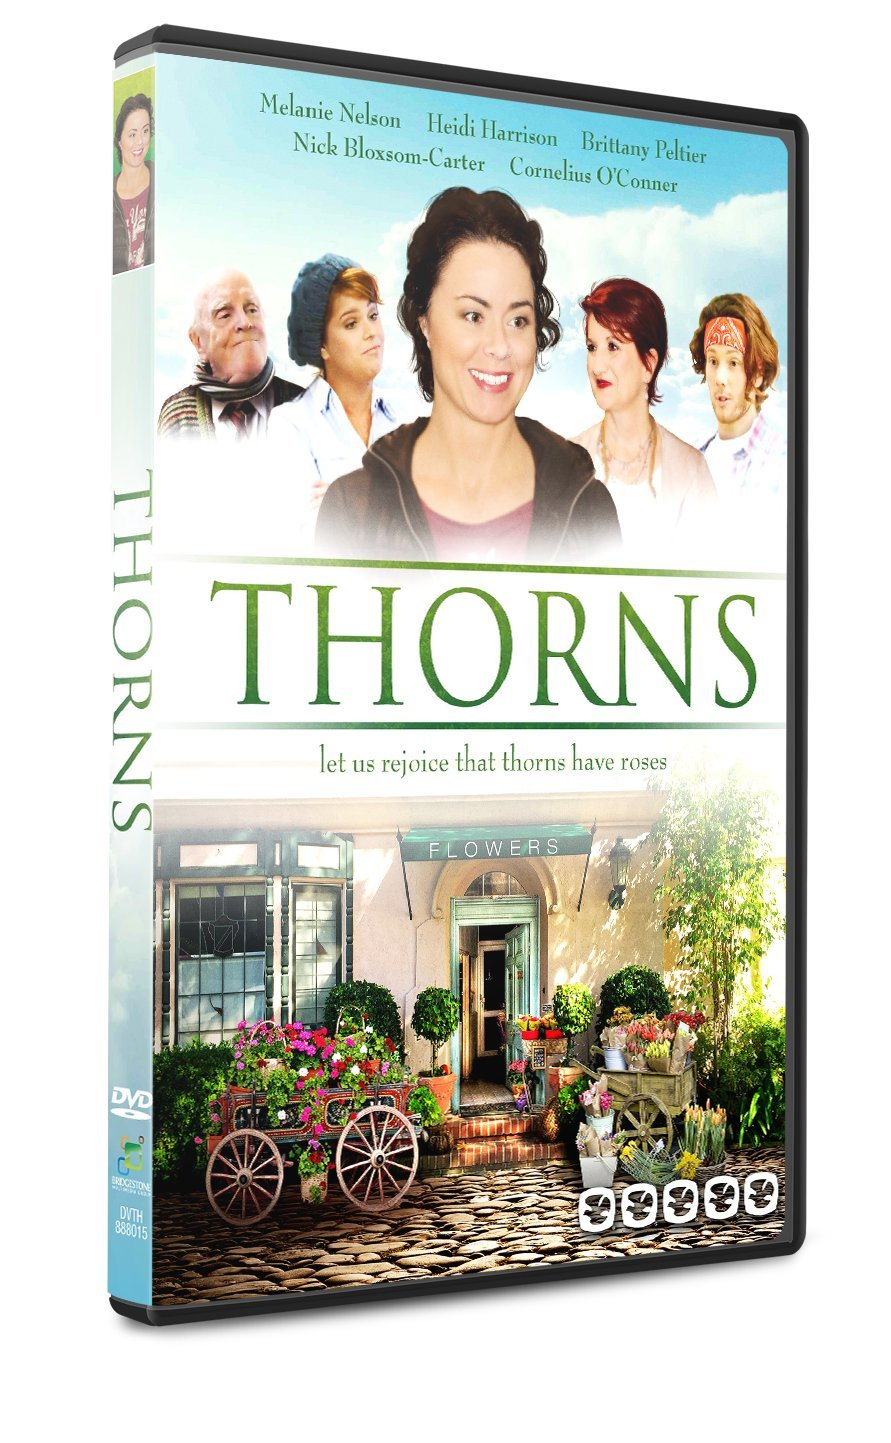 Thorns - Let us Rejoice that thorns have roses. Family DVD